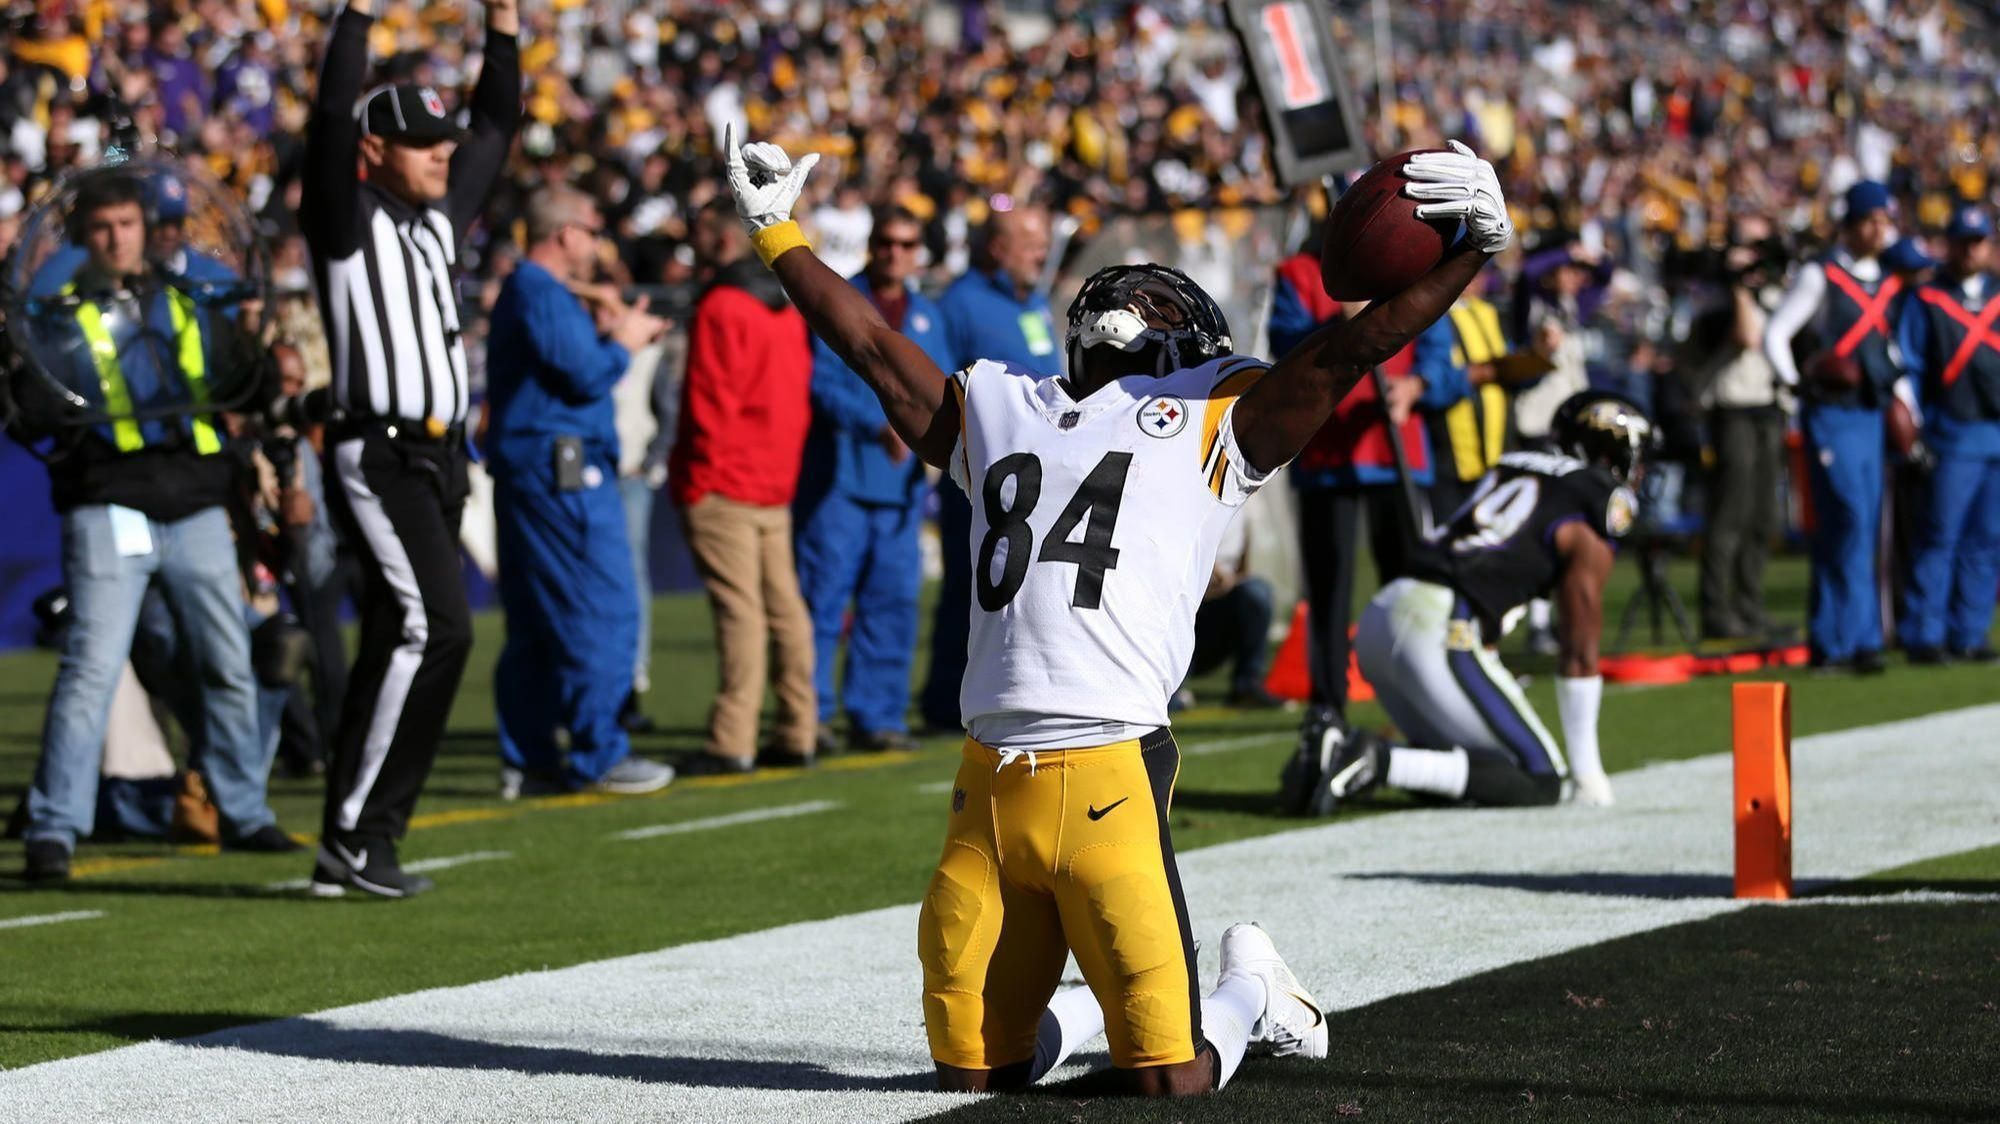 69bfe5fa429 Steelers' Antonio Brown pulled over for going 100 mph, police say #news  #miami #community